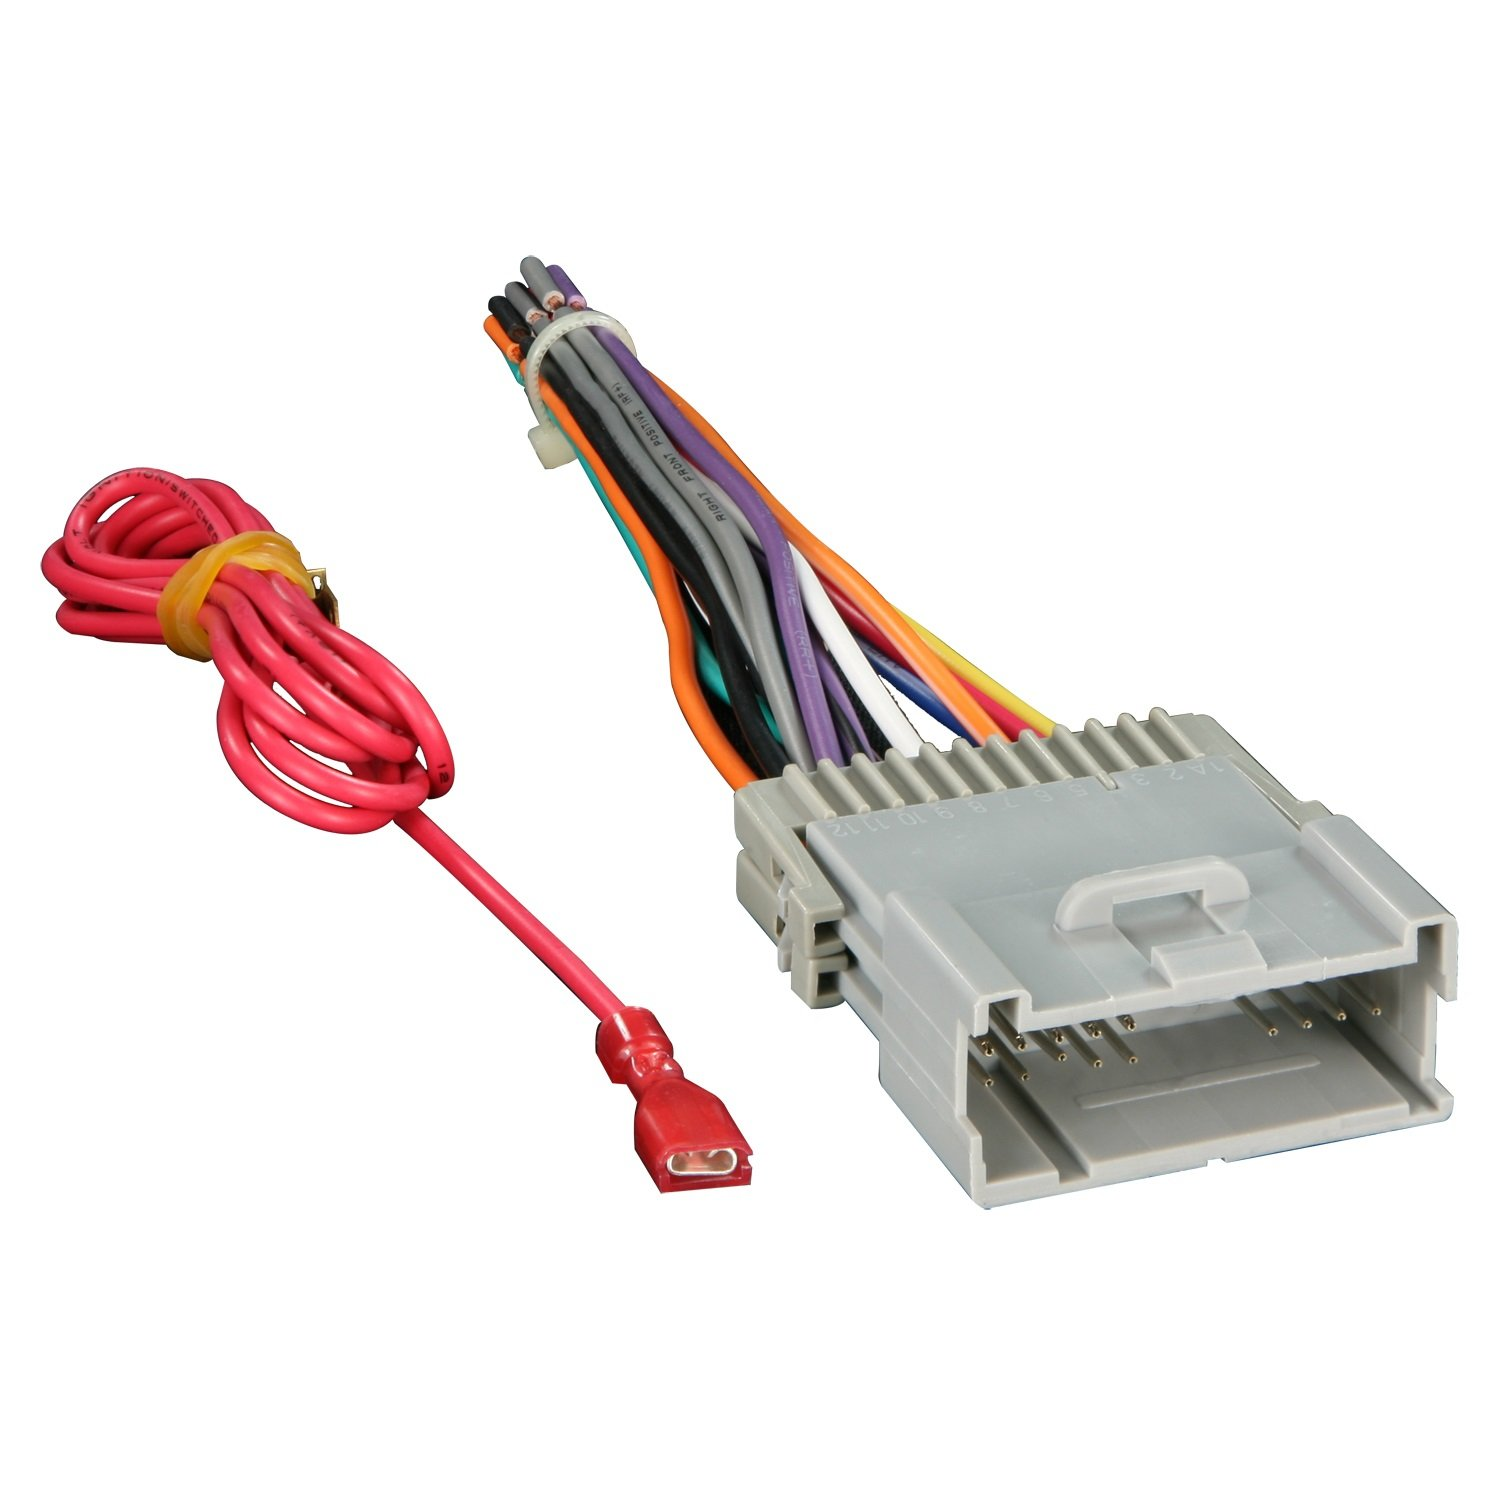 61eewxp9orL._SL1500_ amazon com metra 70 2003 radio wiring harness for gm 98 08  at couponss.co